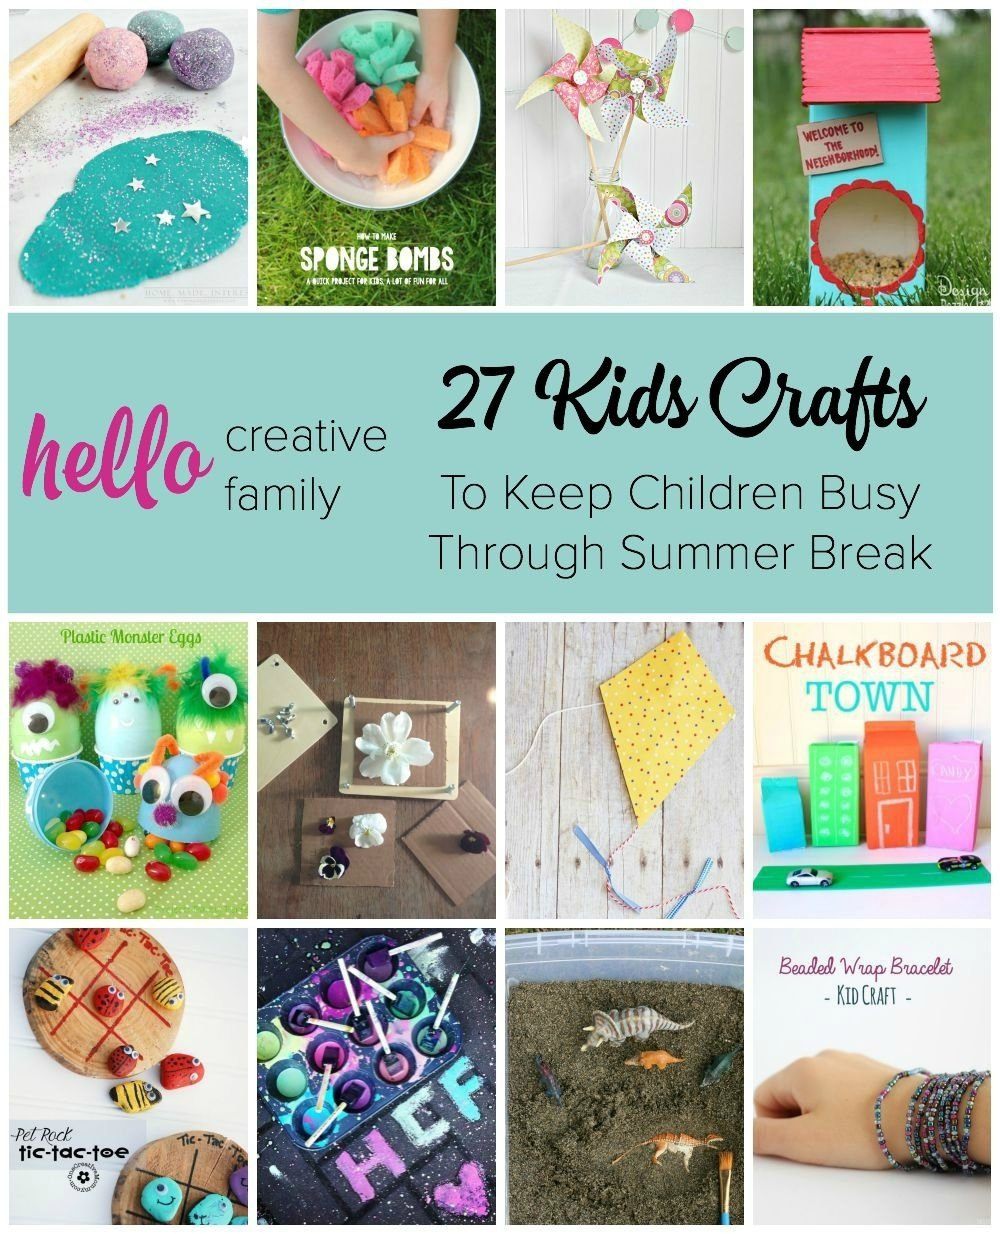 10 Beautiful Ideas To Do With Kids 27 kids crafts to keep children busy through summer break hello 2020